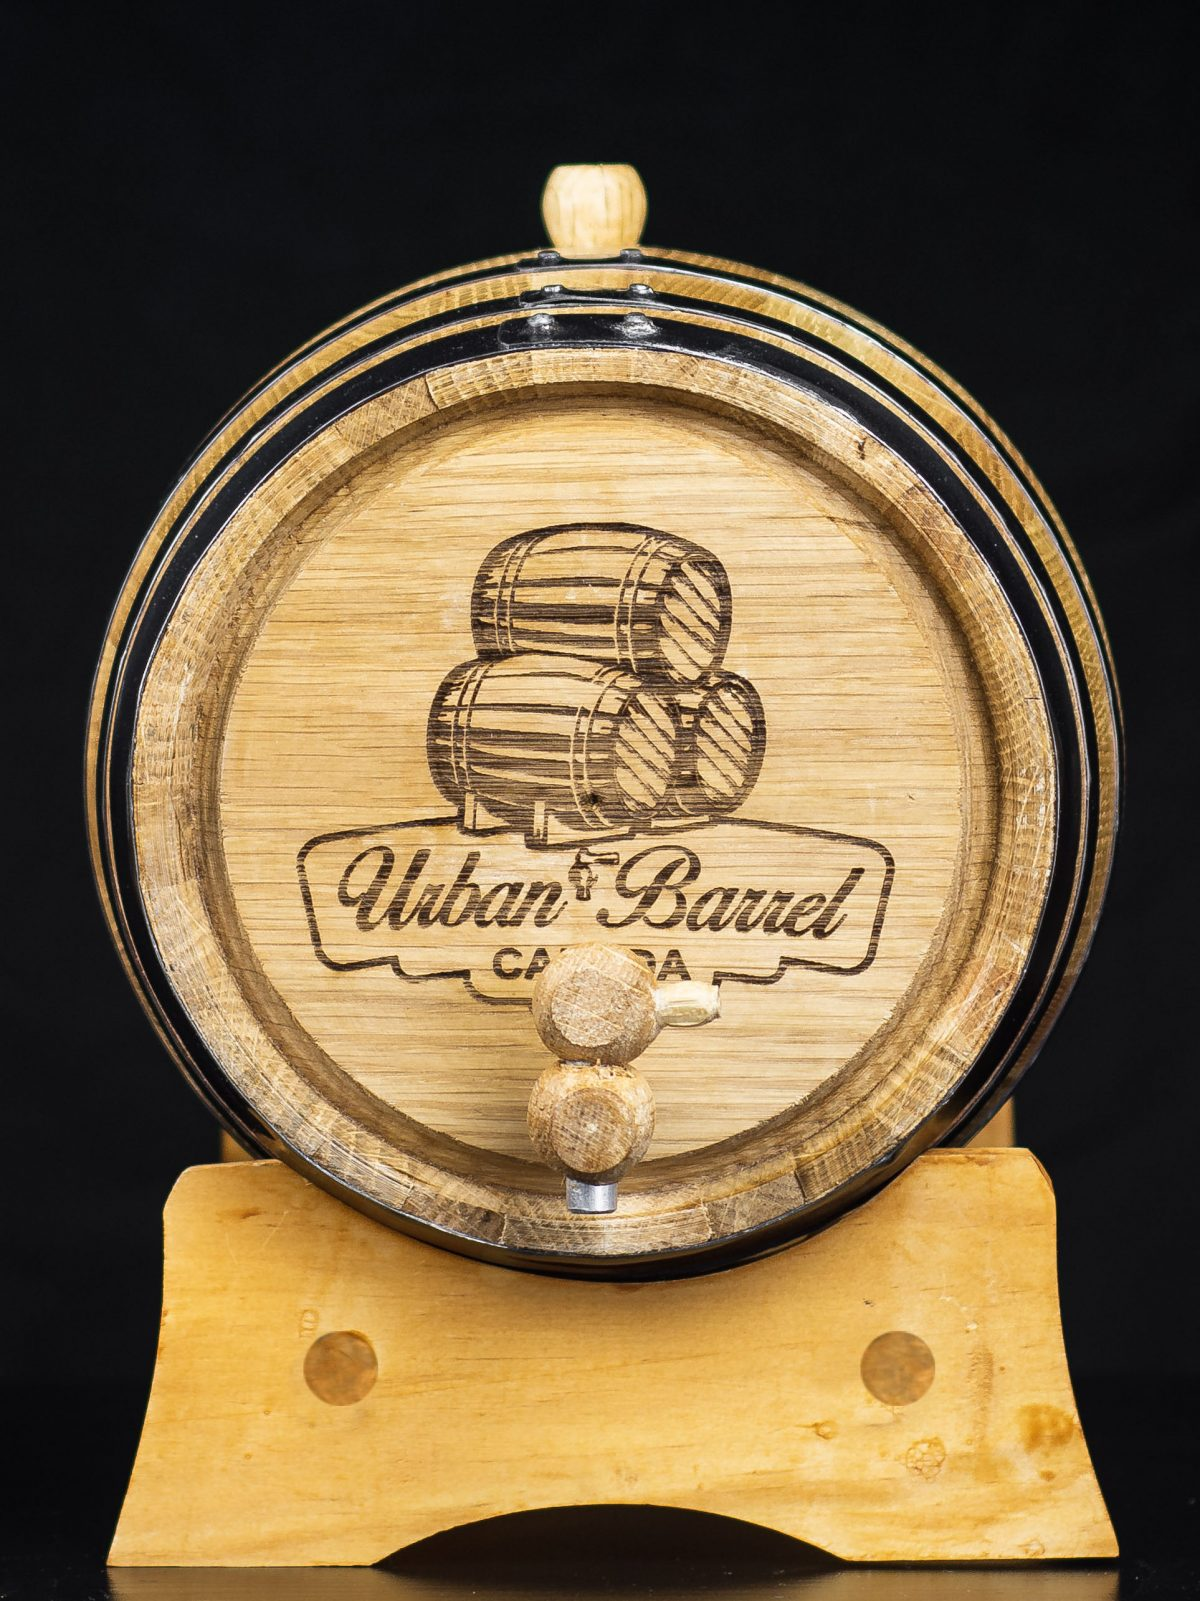 Image of the front of our oak aging barrel